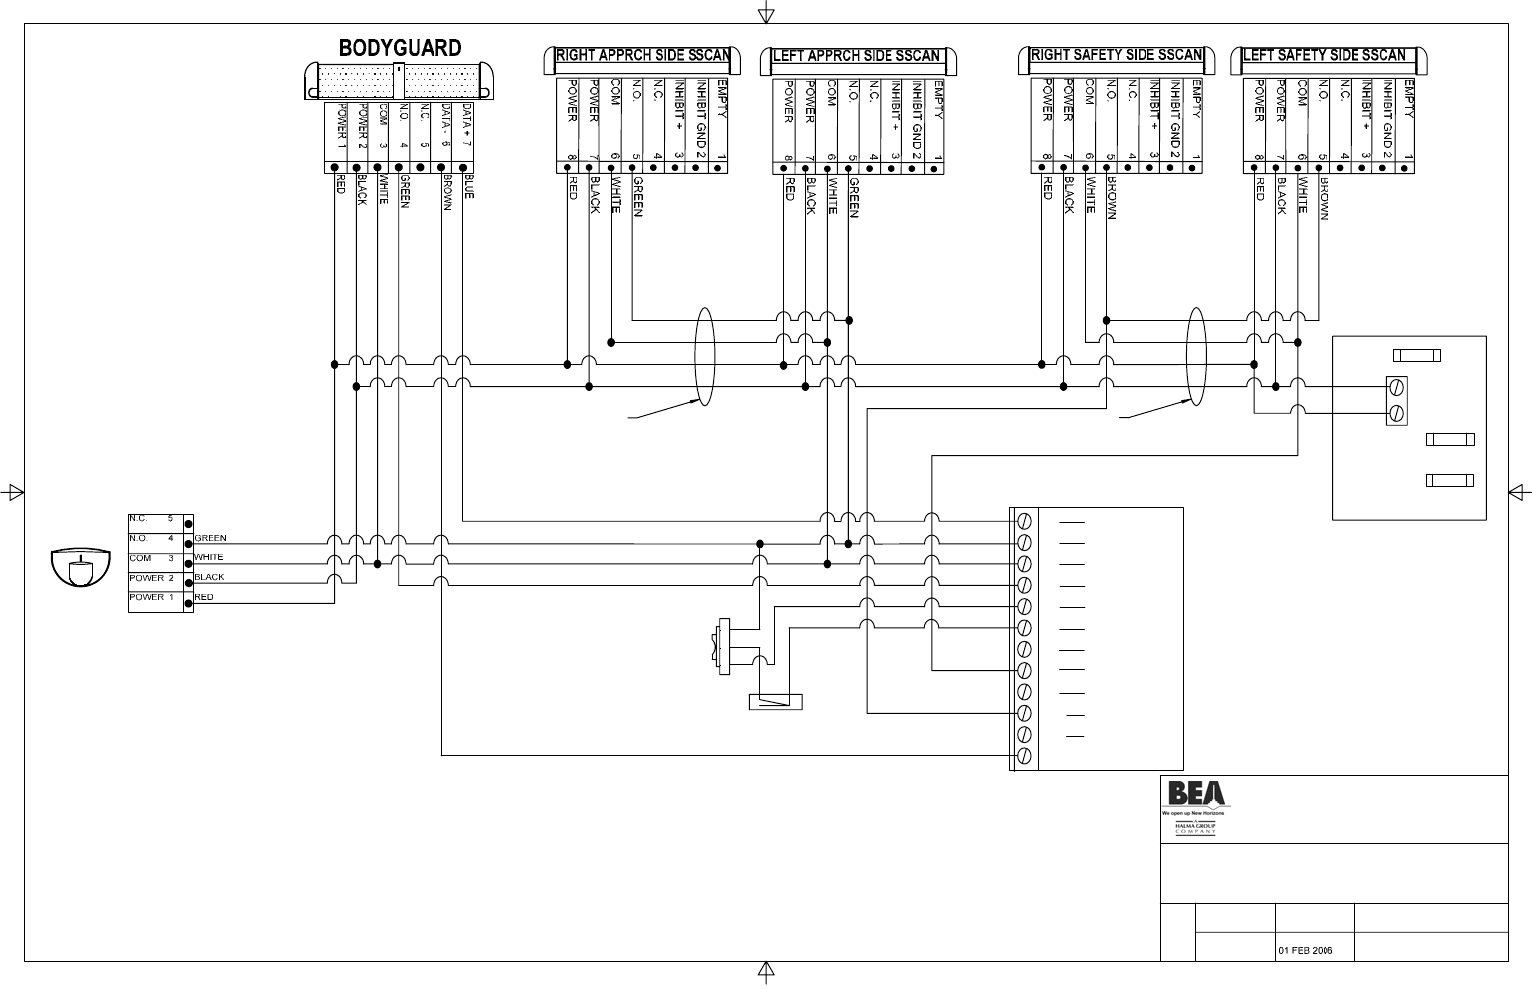 bg4 bea 80 0091 02, c2150 manual c4190 control, c3938 p s horton 4160 wiring diagram at panicattacktreatment.co